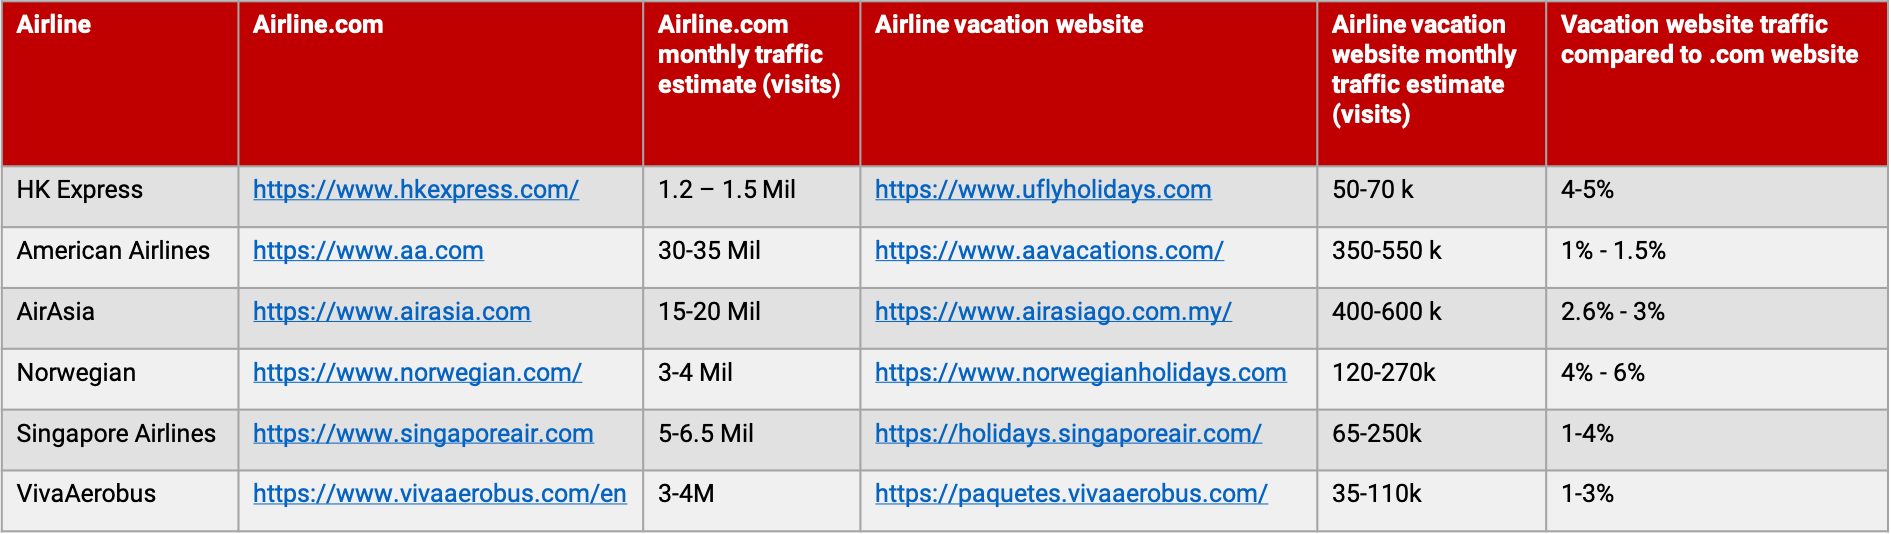 Airlines Cross-selling Hotels and Vacation Packages [5